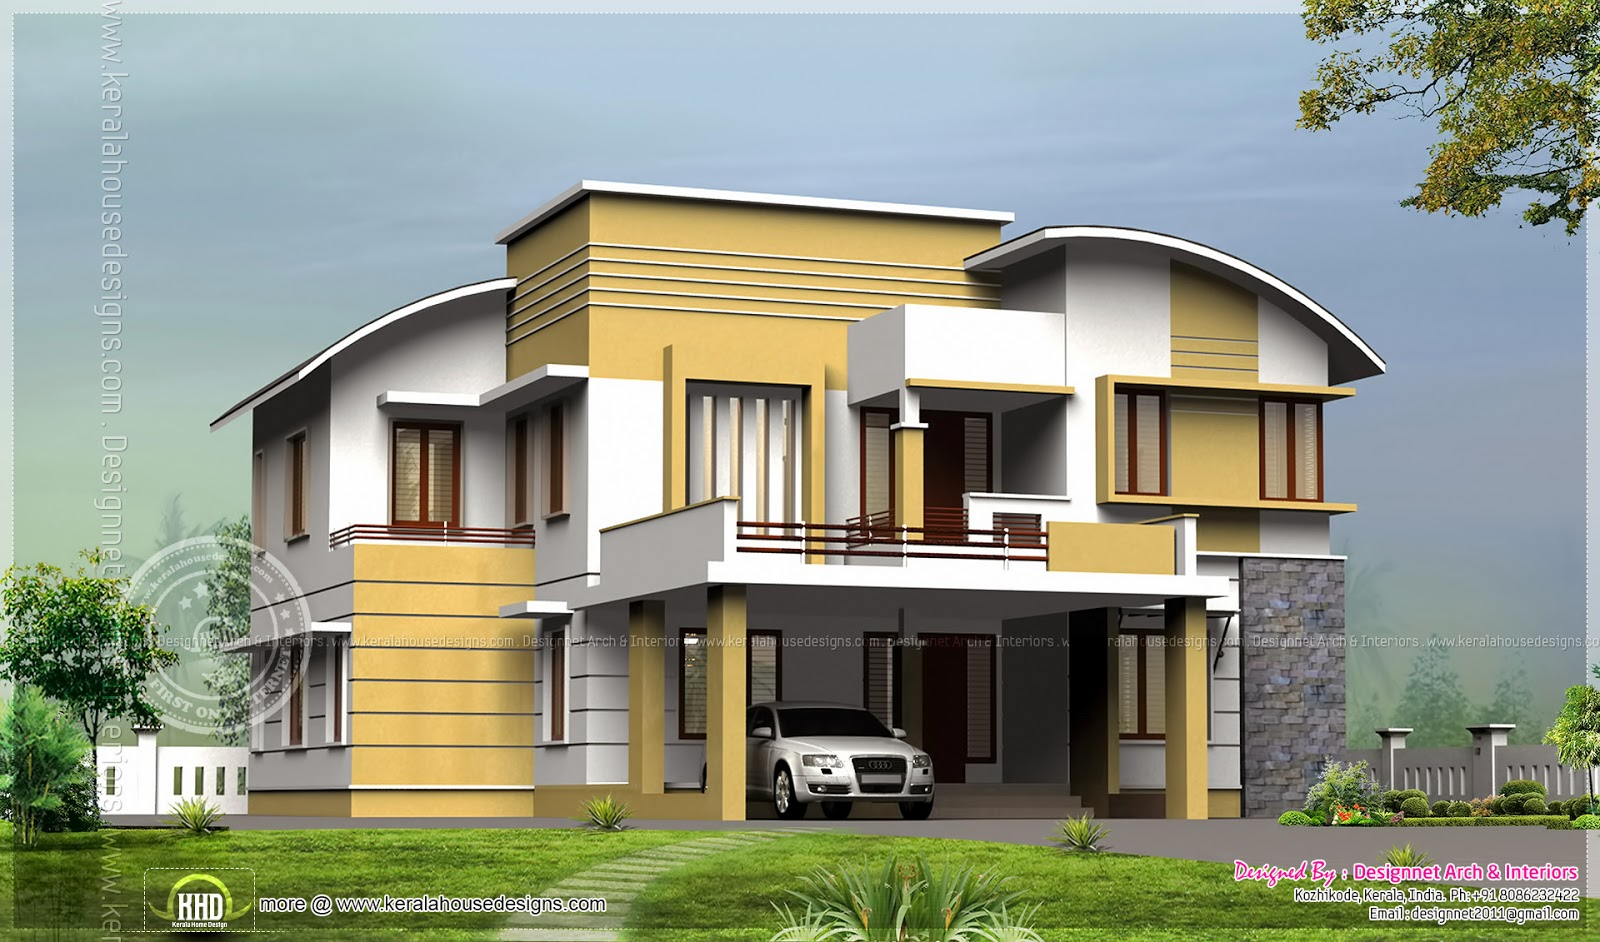 289 Square Yards 4 Bhk House Exterior Kerala Home Design And Floor